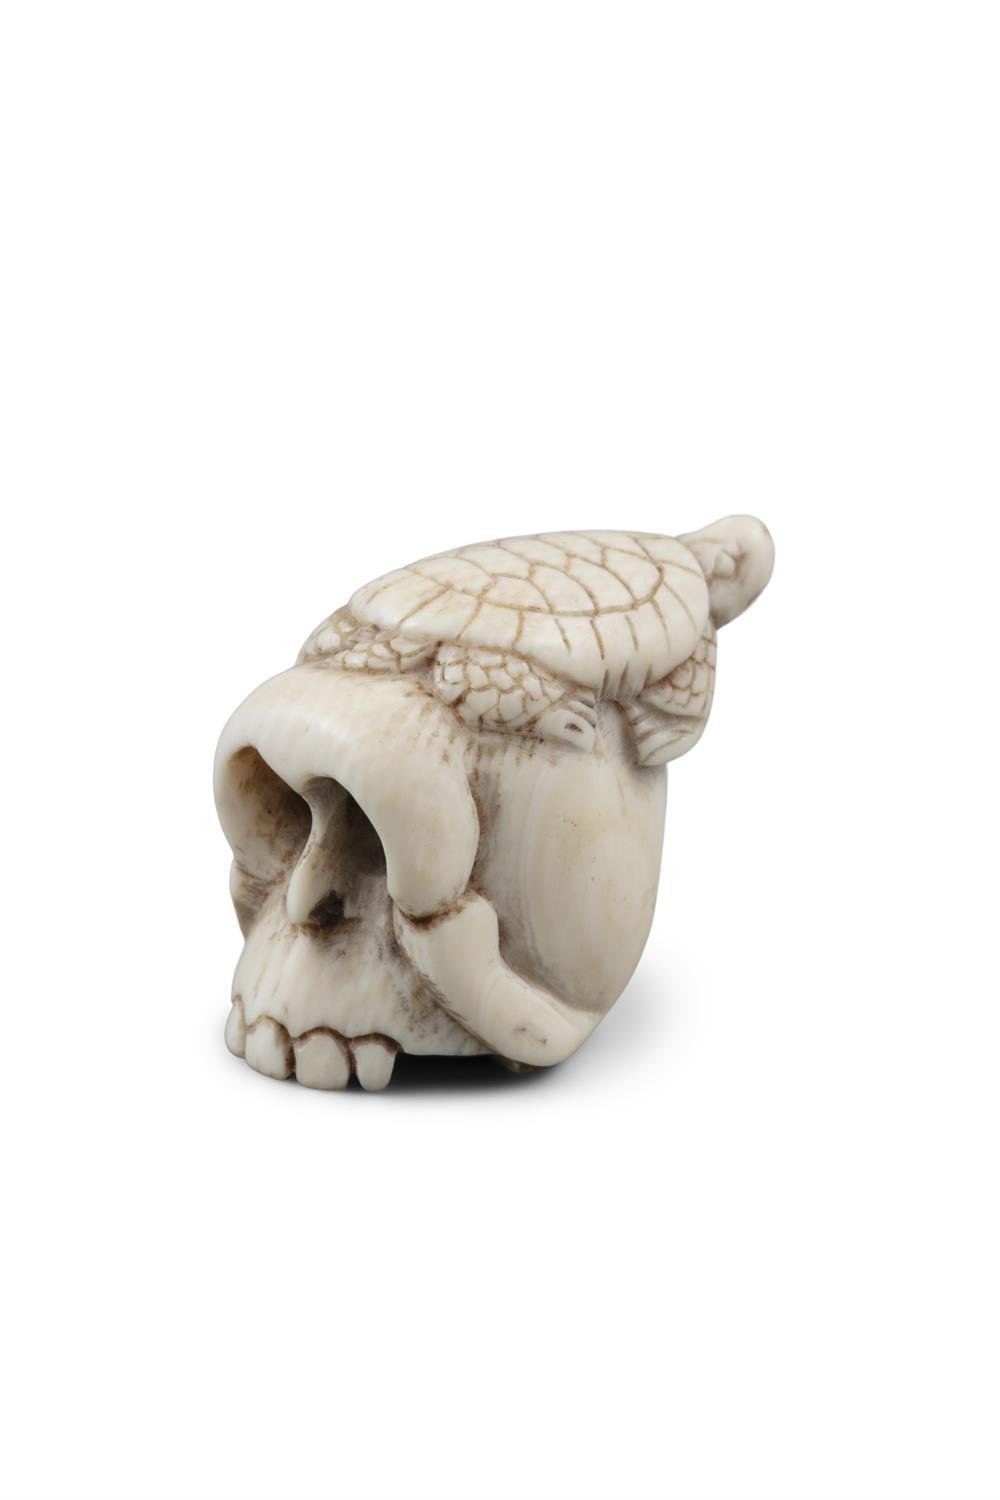 *VANITY - A GROUP OF TWO (2) 'SKULL' KATABORI NETSUKE Japan, 19th century The first one carved out - Image 14 of 18